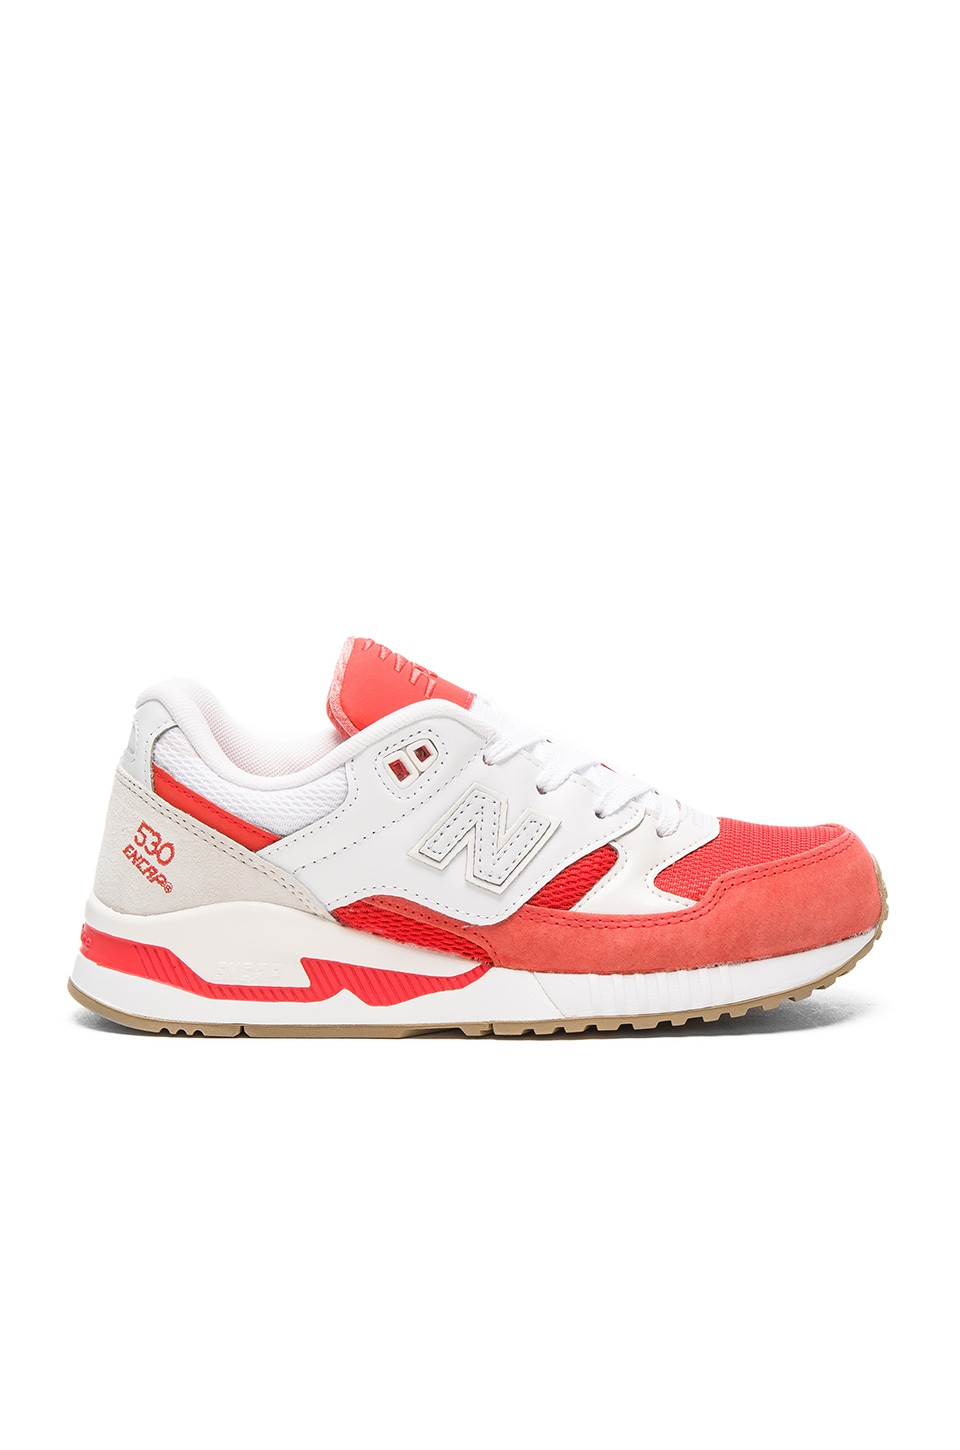 New Balance 530 Summer Waves Sneaker in Coral Glow & White